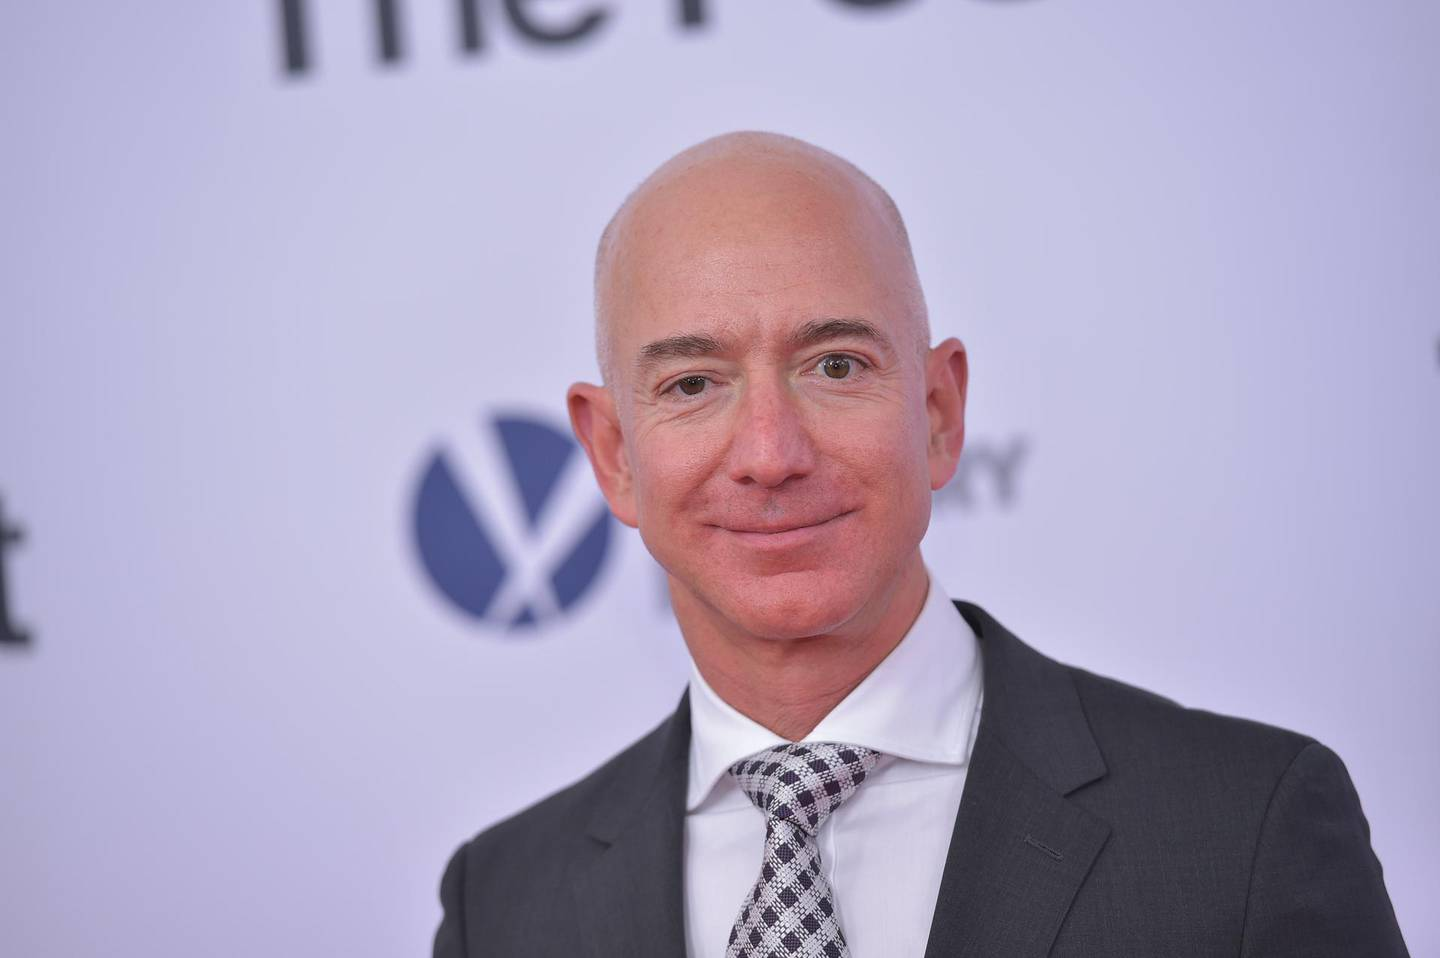 """FILES) This file photo taken on December 14, 2017 shows Amazon CEO Jeff Bezos arriving for the premiere of """"The Post"""" in Washington, DC. Triumphant in online retail, cloud computing, organic groceries, and streaming television, Amazon founder and chief disruptor Jeff Bezos is turning his seemingly limitless ambition to health care. Amazon, launched as an internet bookseller nearly 24 years ago, has branched into offerings including voice-commanded speakers infused with Alexa artificial intelligence and original TV shows streamed online at its Prime subscription service.  / AFP PHOTO / Mandel NGAN"""